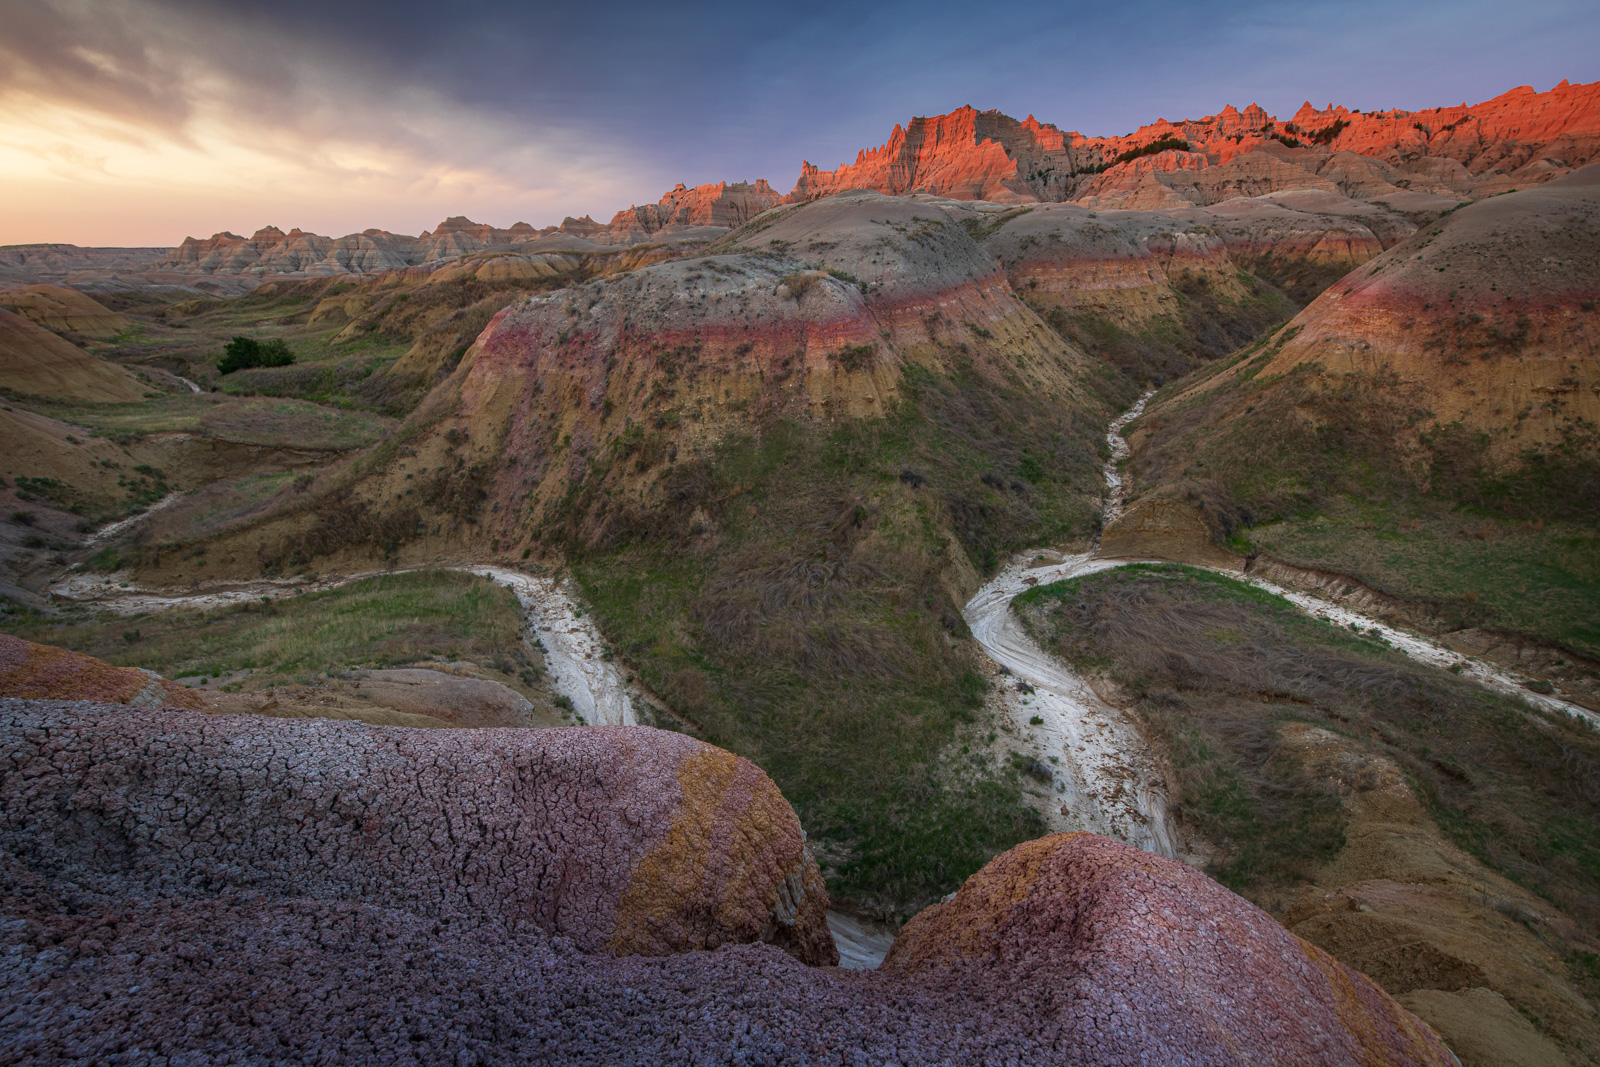 A dry wash snakes below the Yellow Mounds at sunrise.